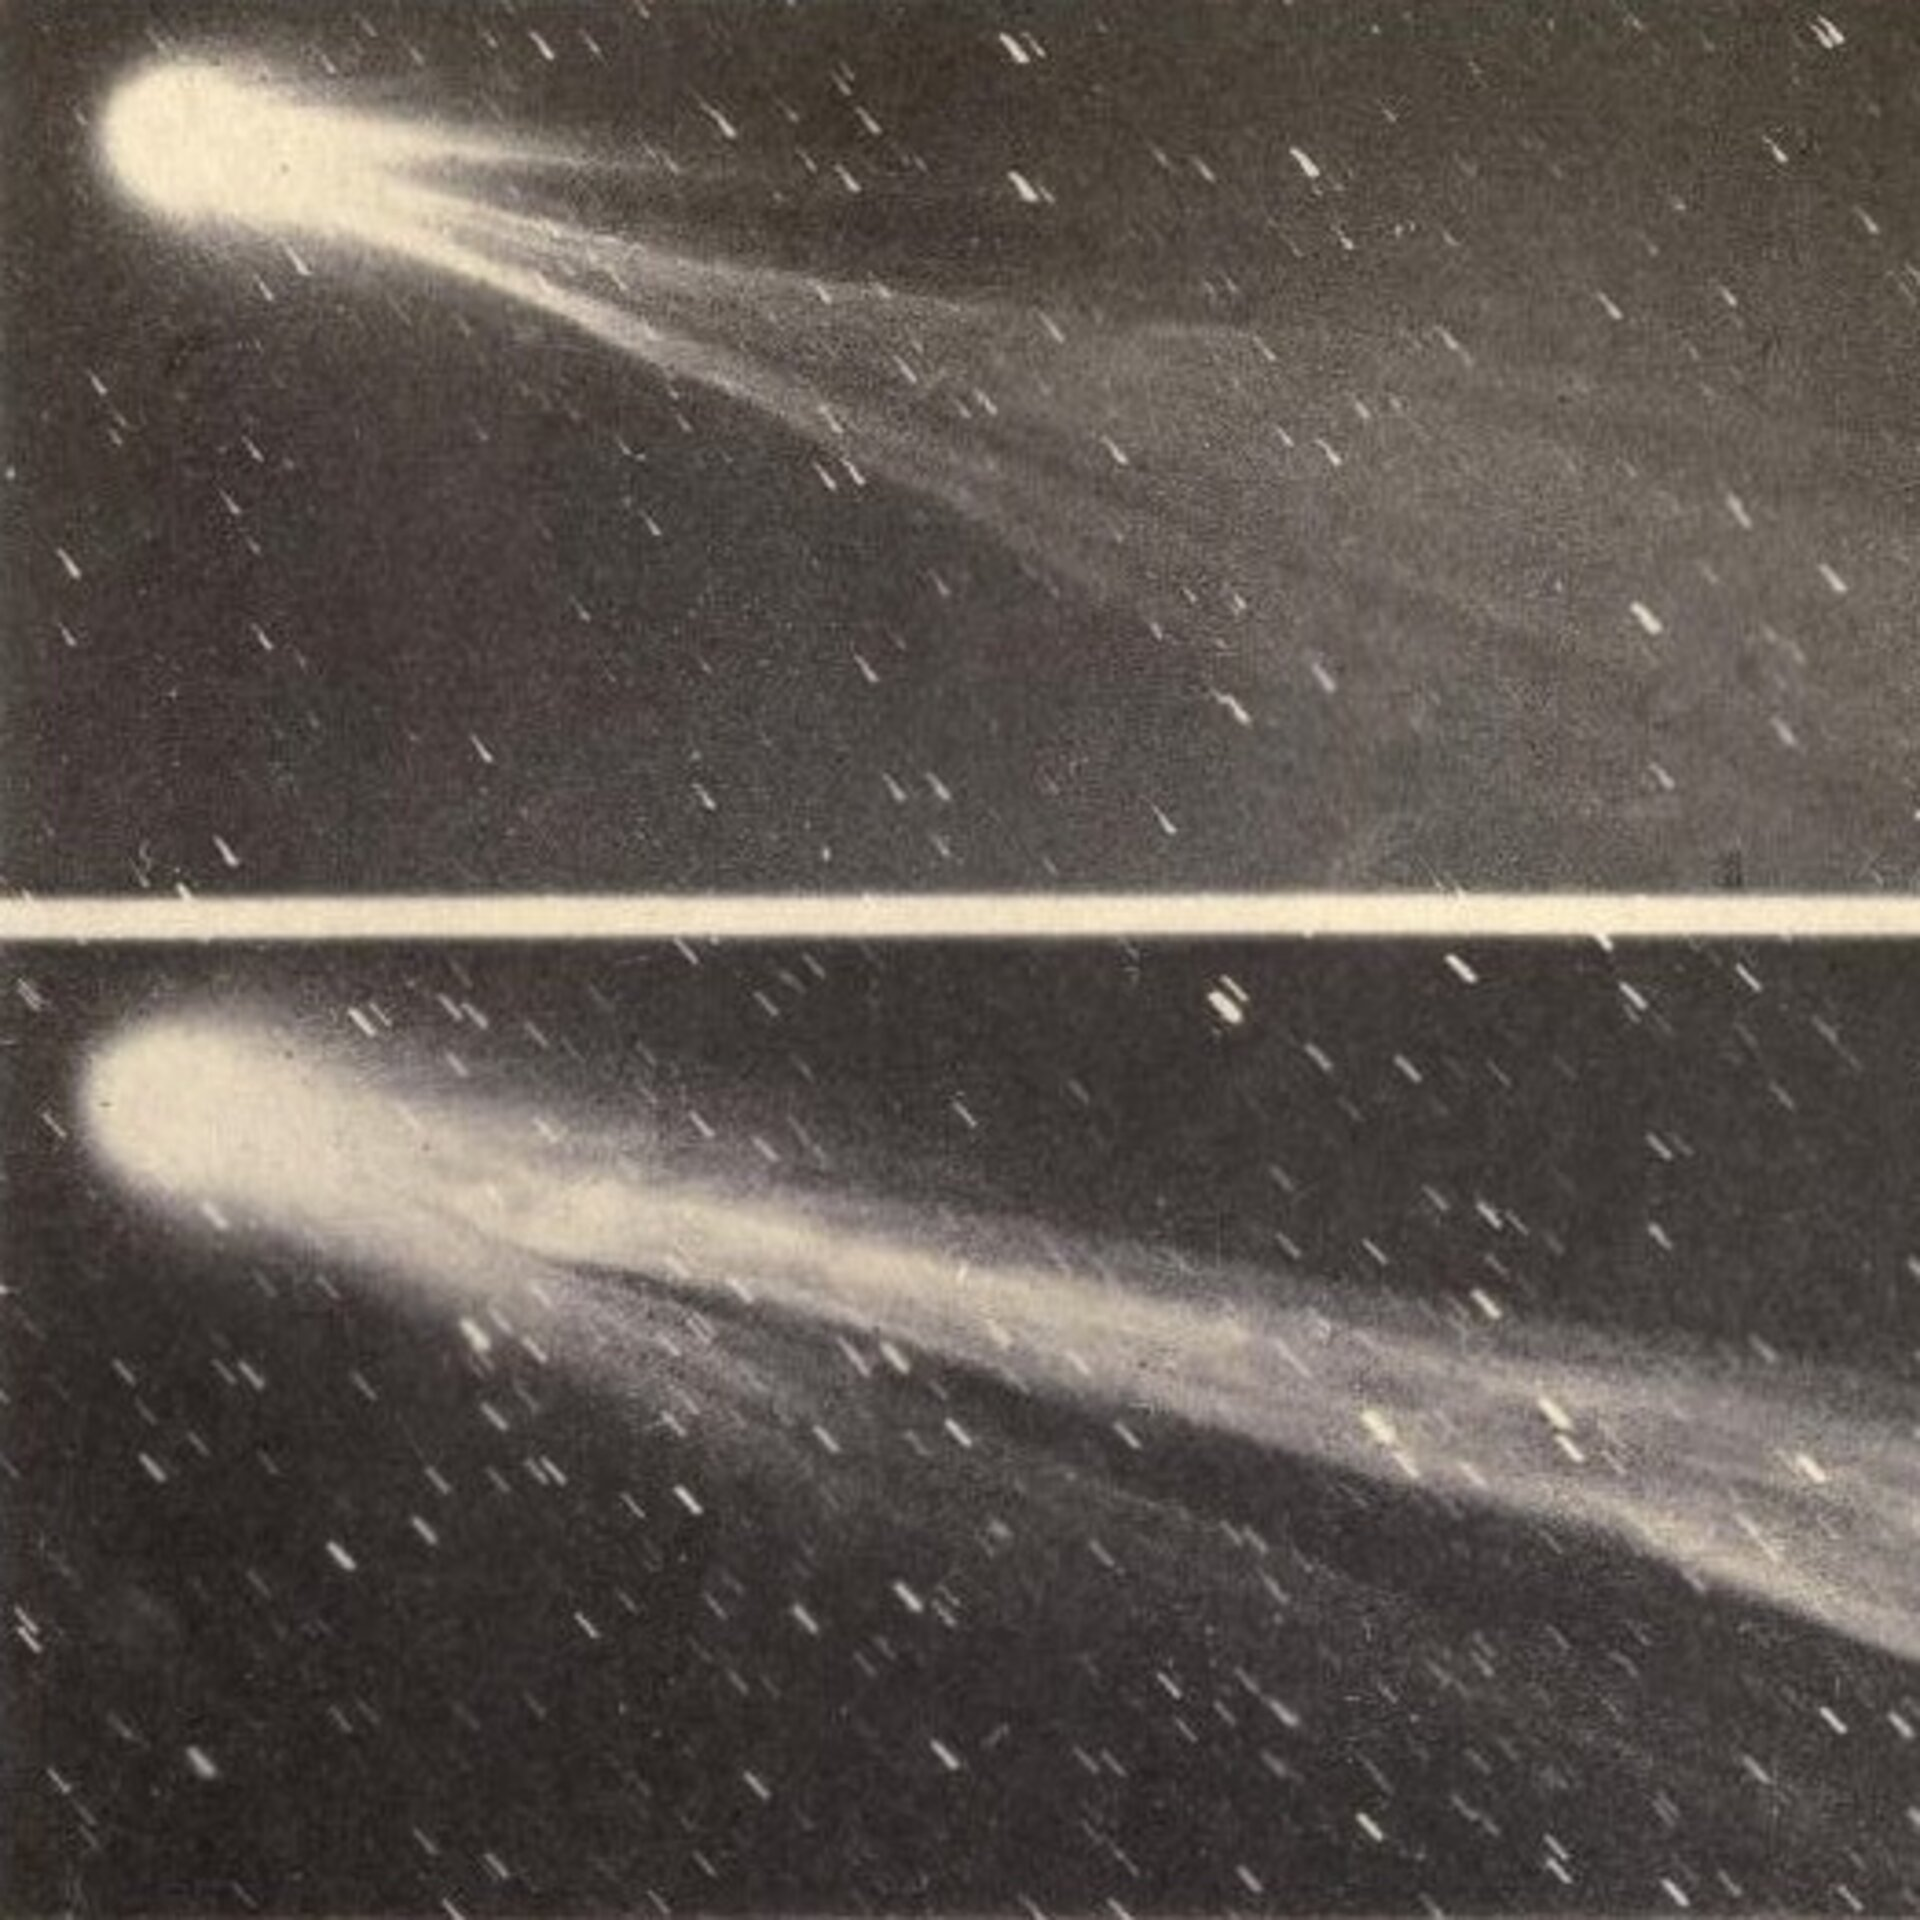 The cautionary tail of Comet Swift–Tuttle